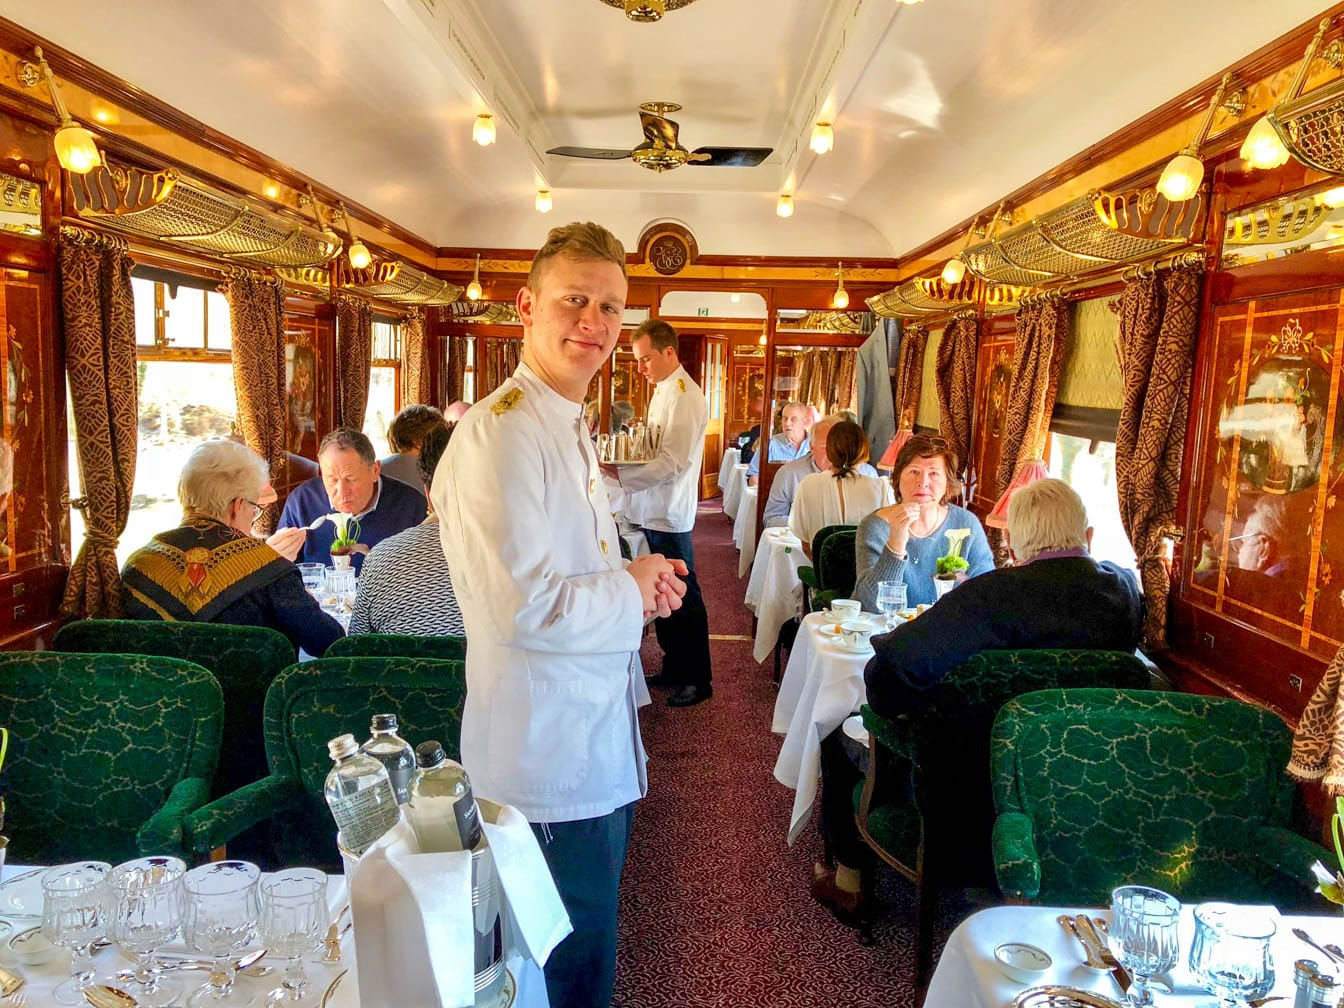 Waiter in the dining car of the Venice Simplon-Orient-Express (VSOE) train